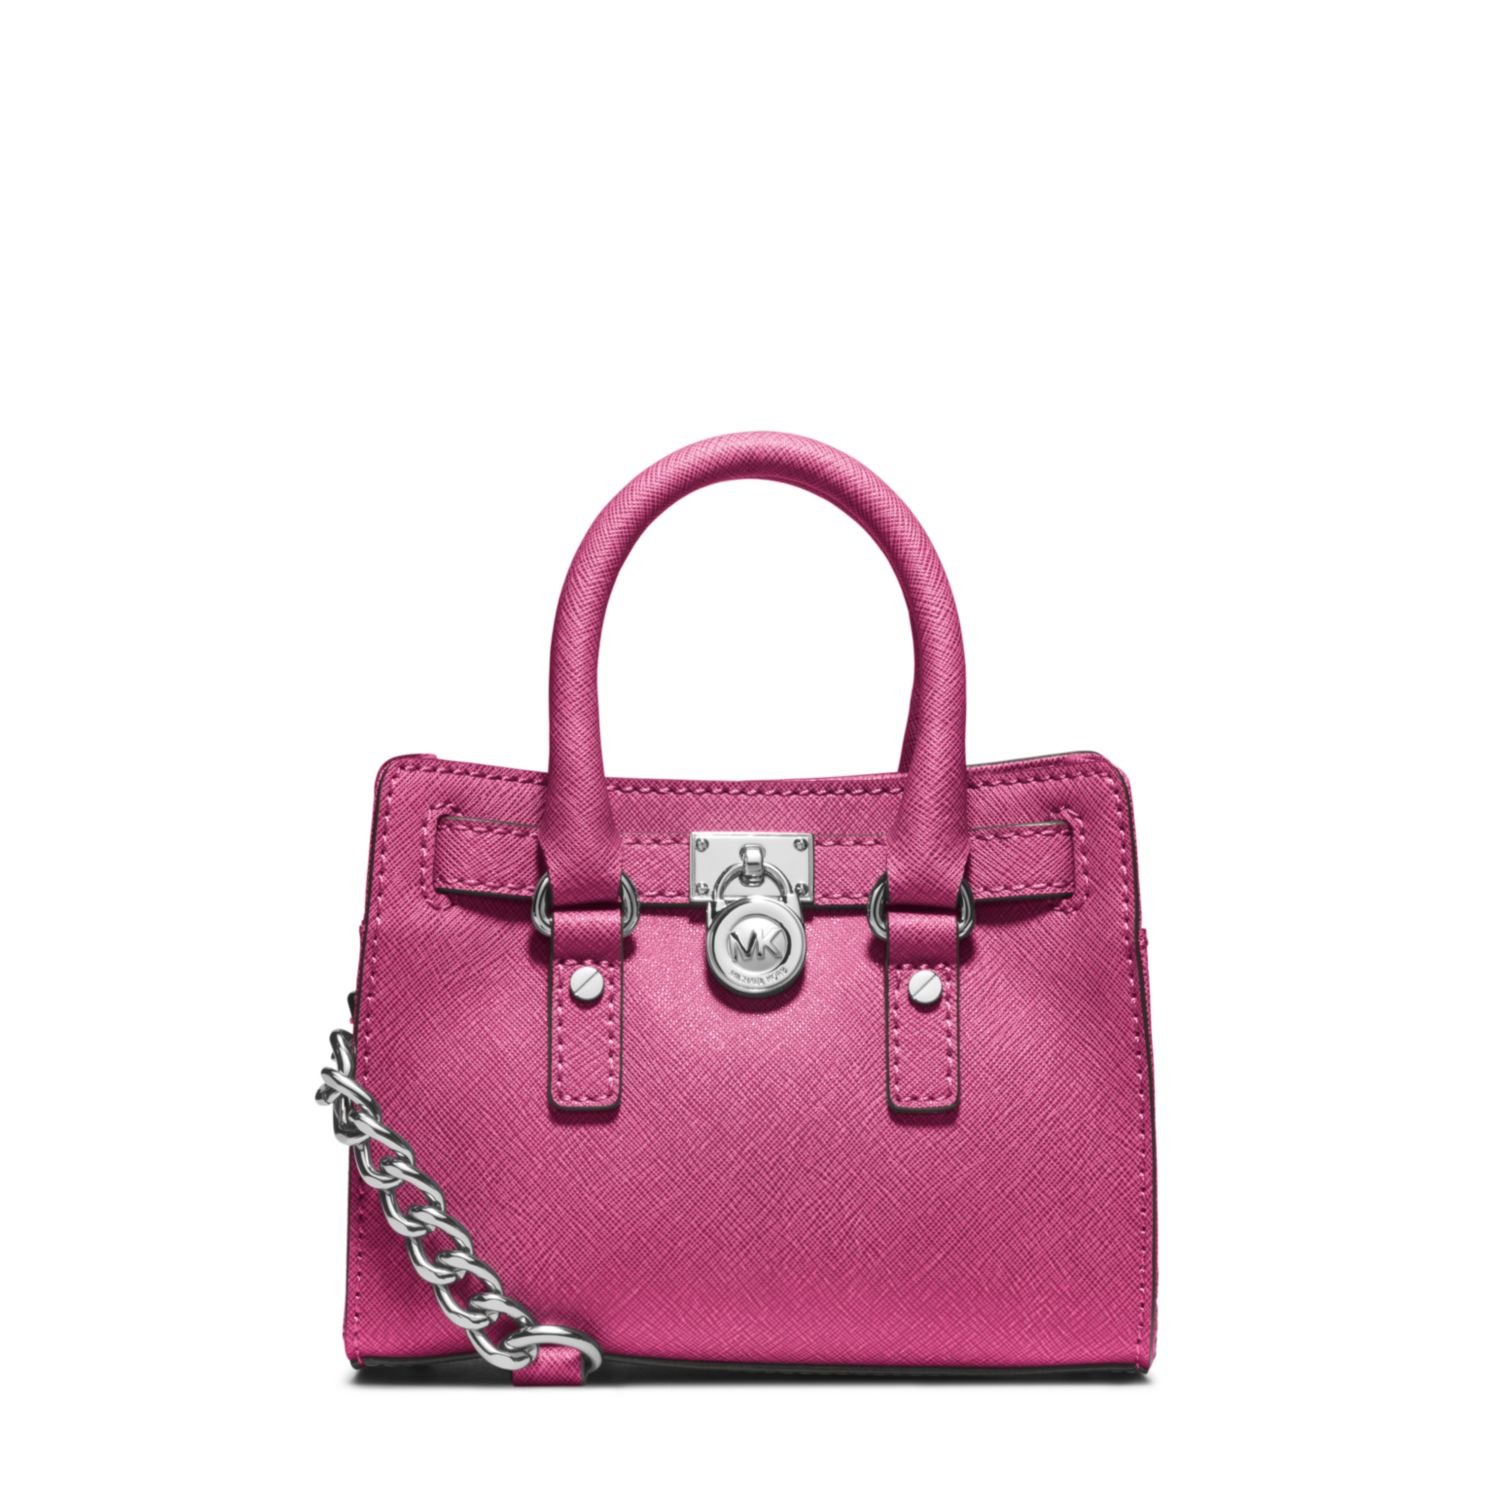 Michael michael kors pink mini hamilton messenger bag product 1 car